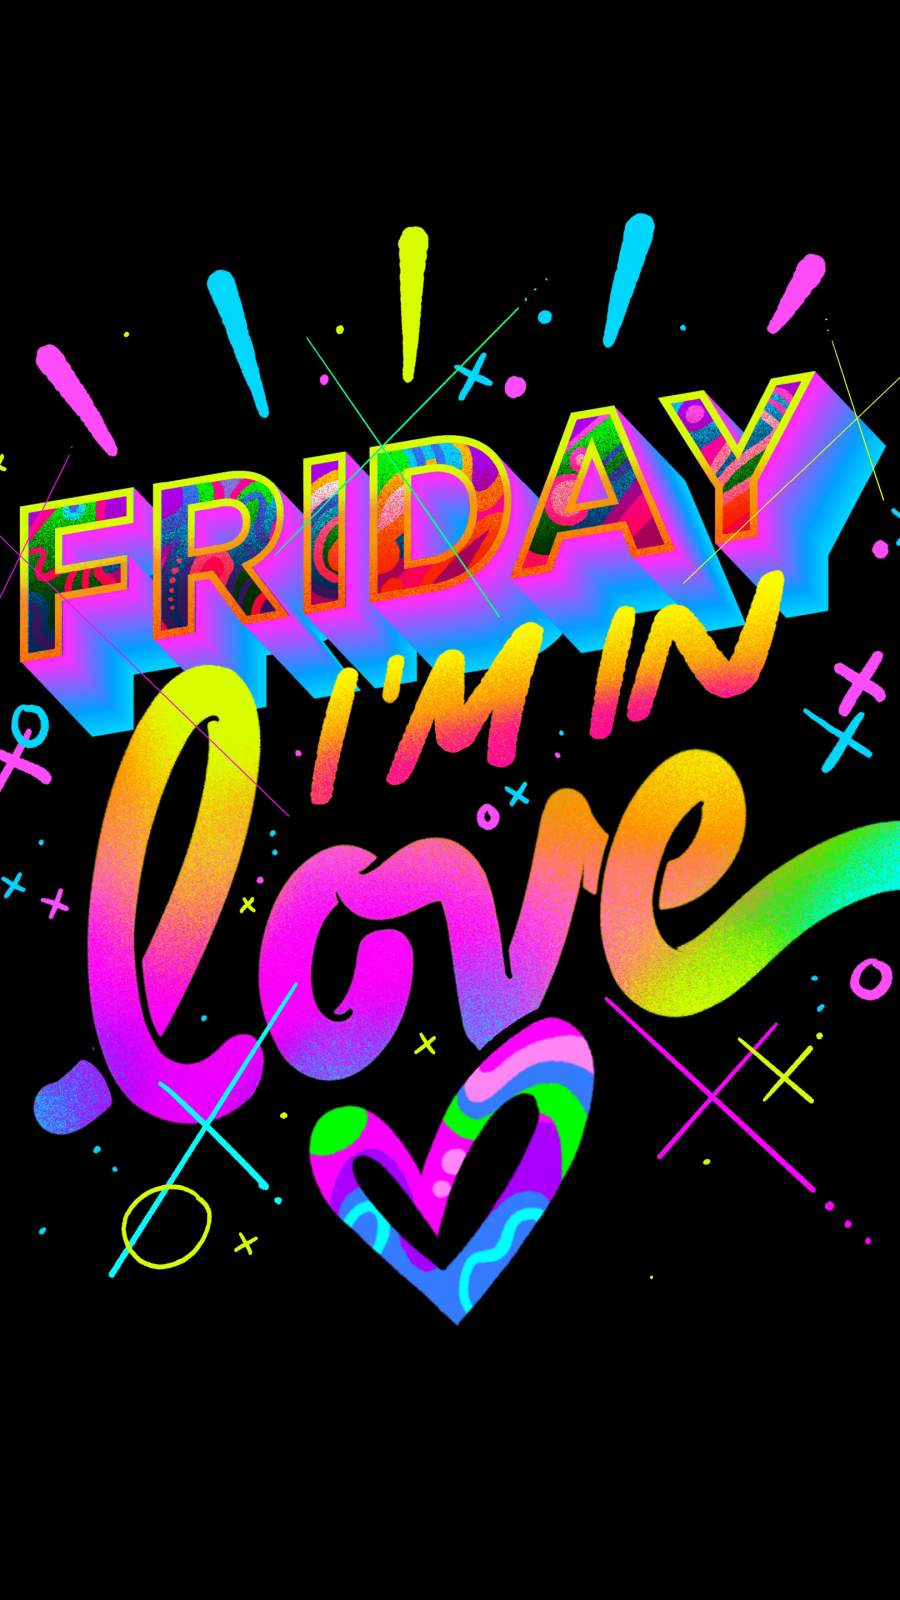 Friday I m In Love iPhone Wallpaper